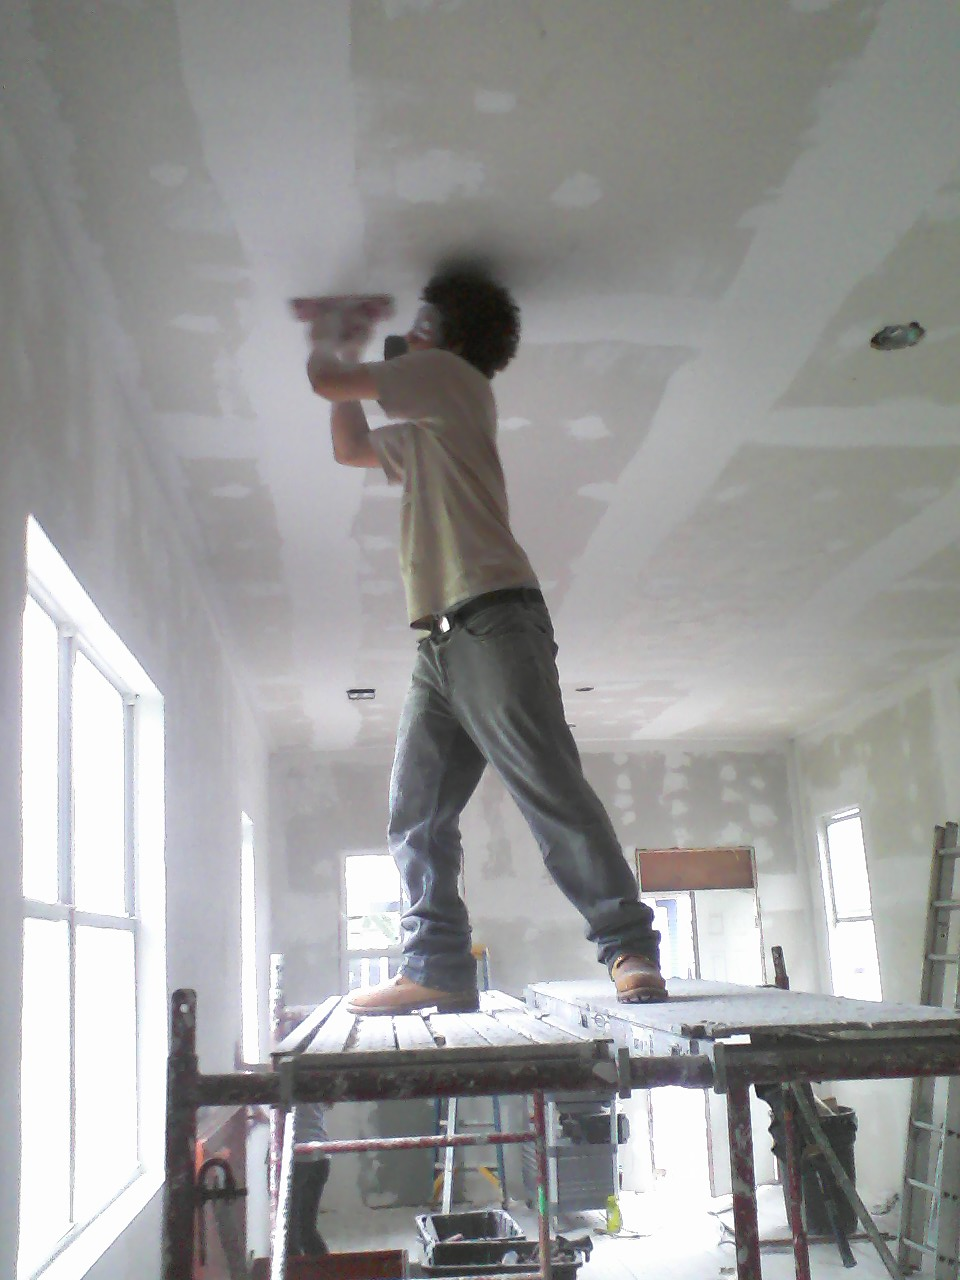 I can't hold up this ceiling much longer!